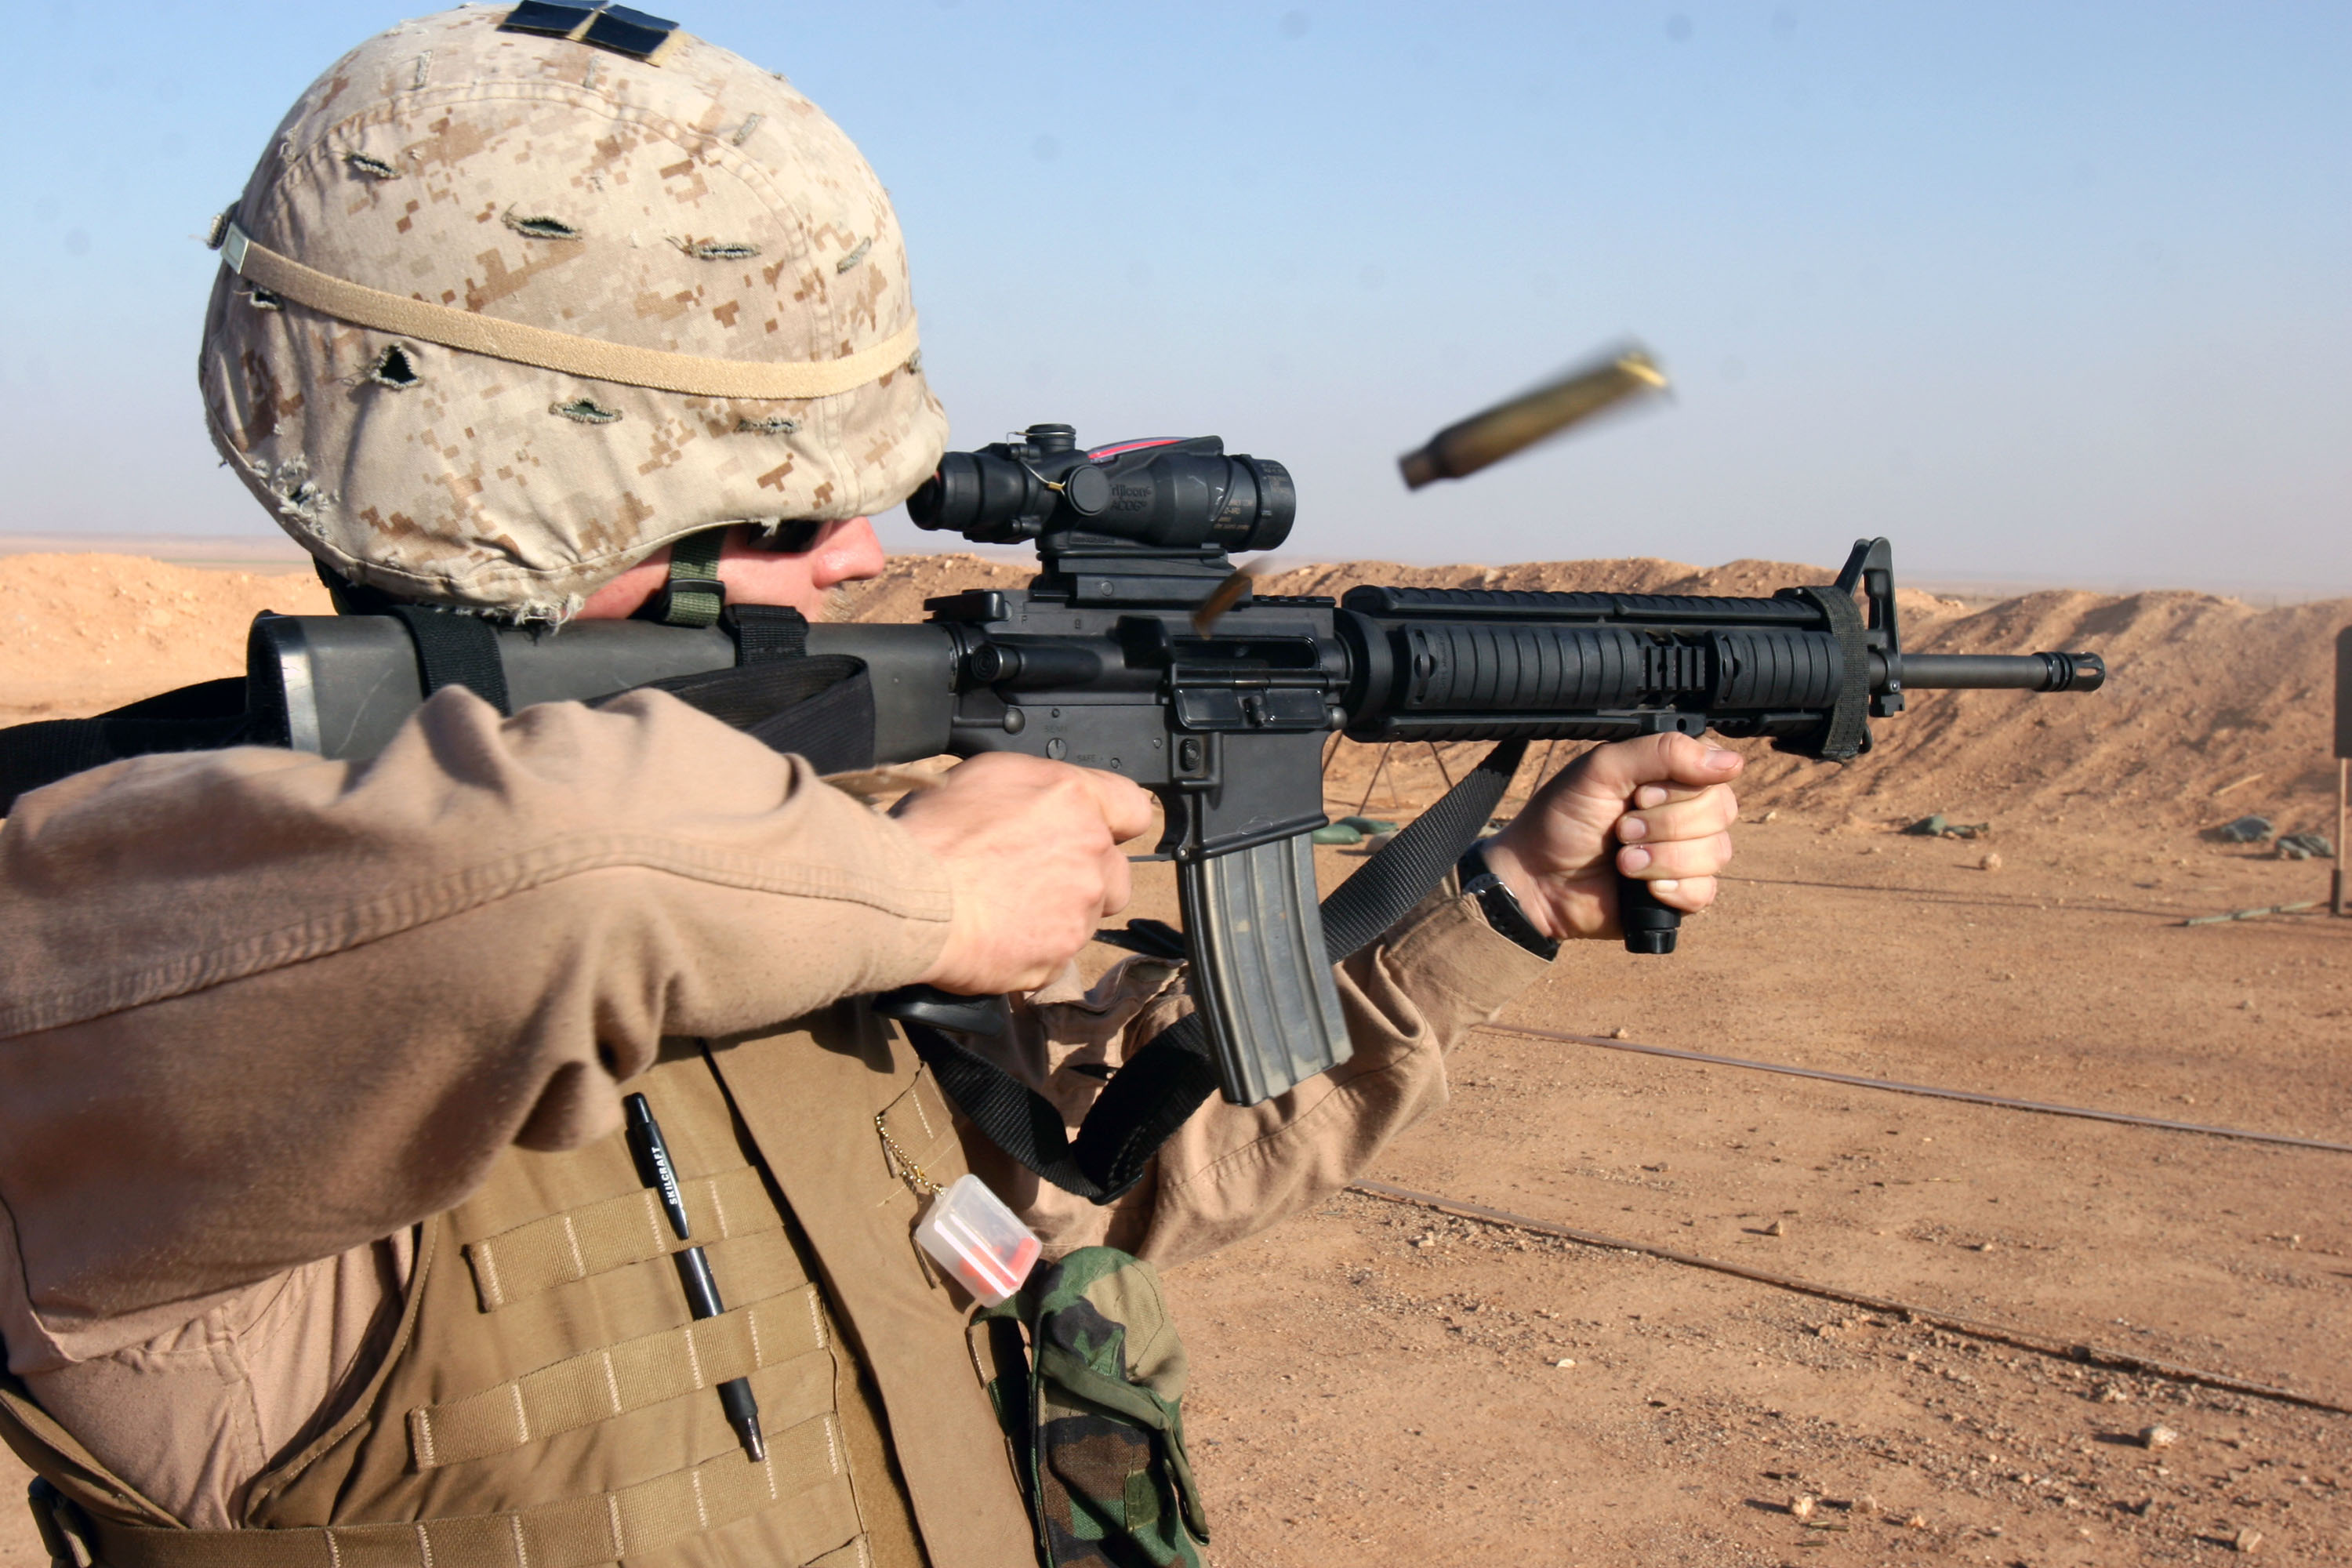 What are Some Ineffective Rifles Not Suitable for Combat